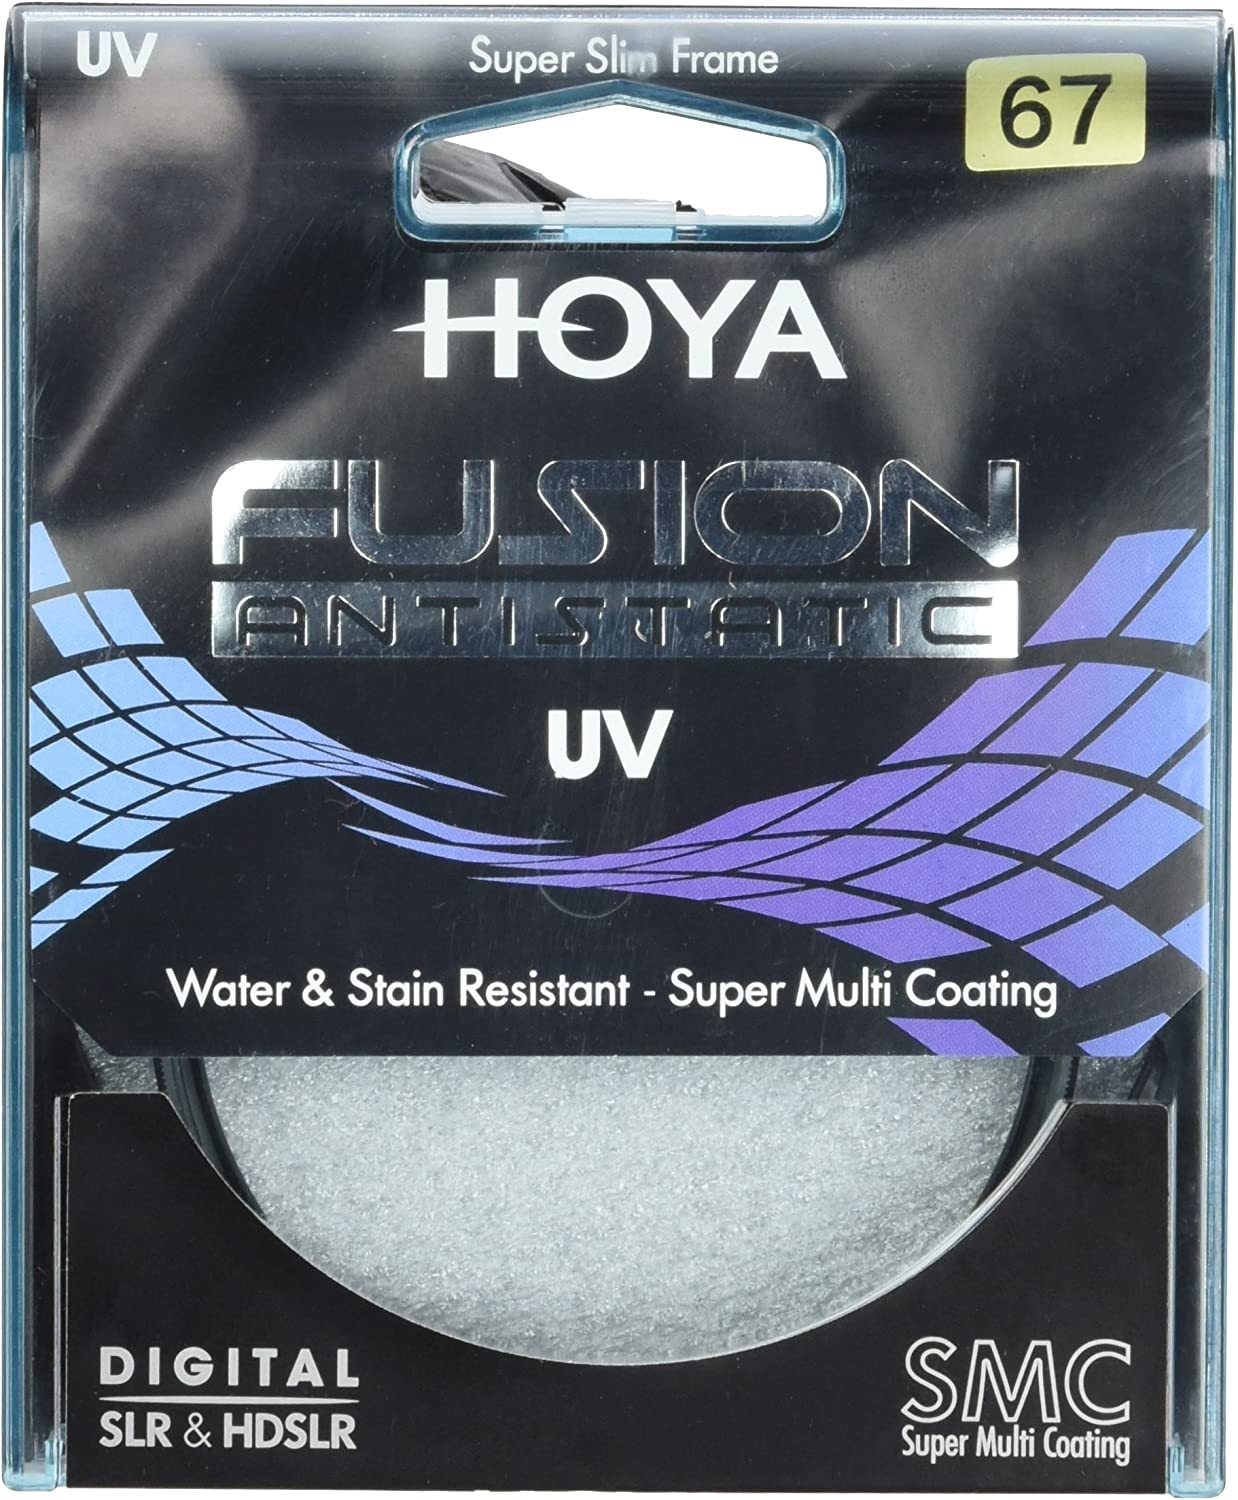 Hoya 49 mm Fusion Antistatic UV Filter